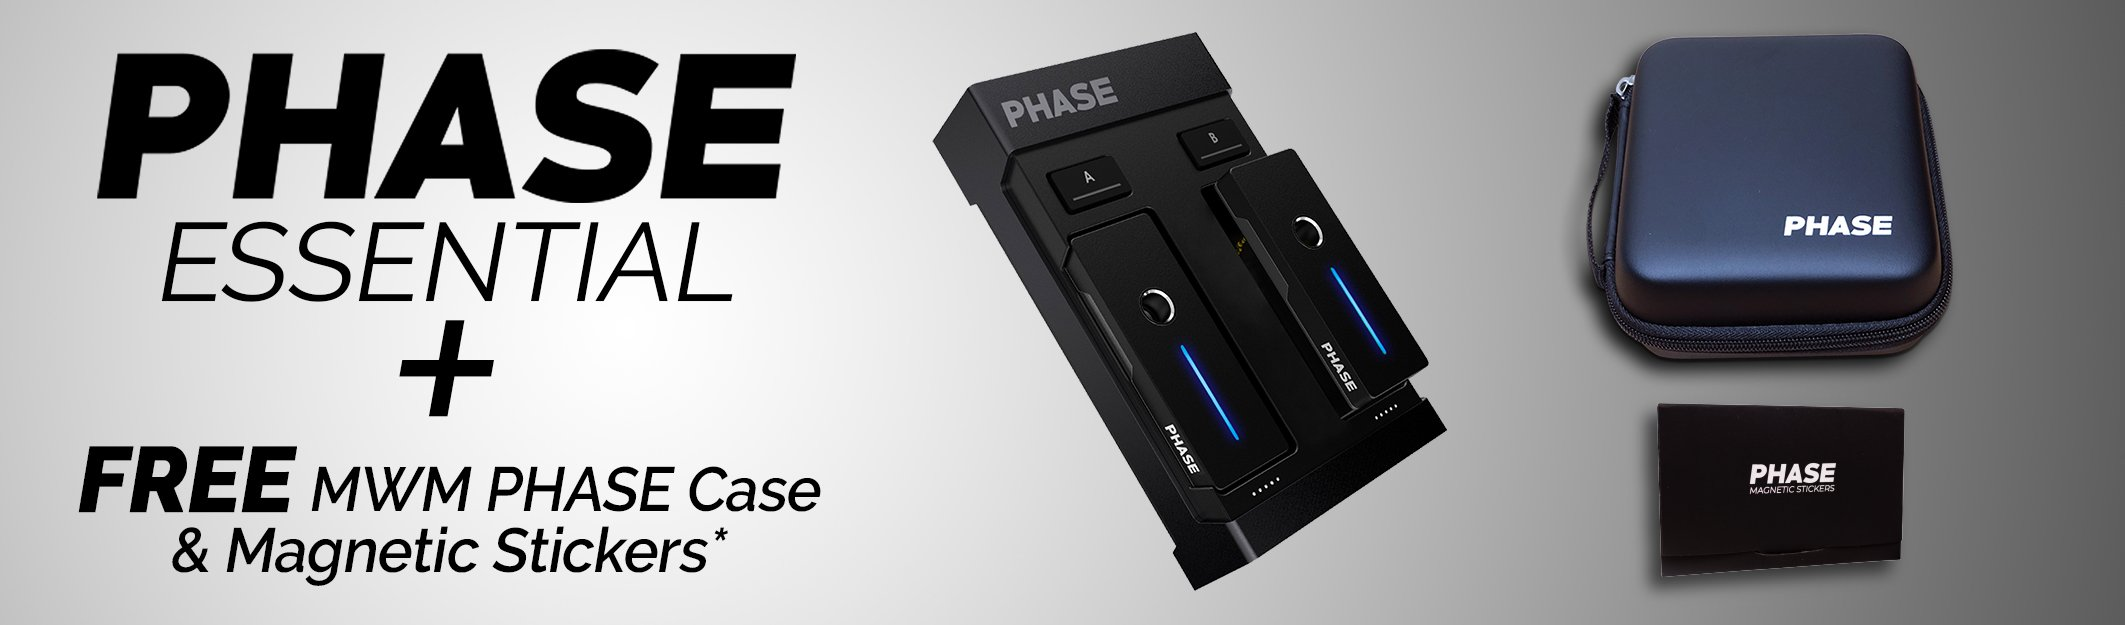 Phase Mail In Rebate Promo